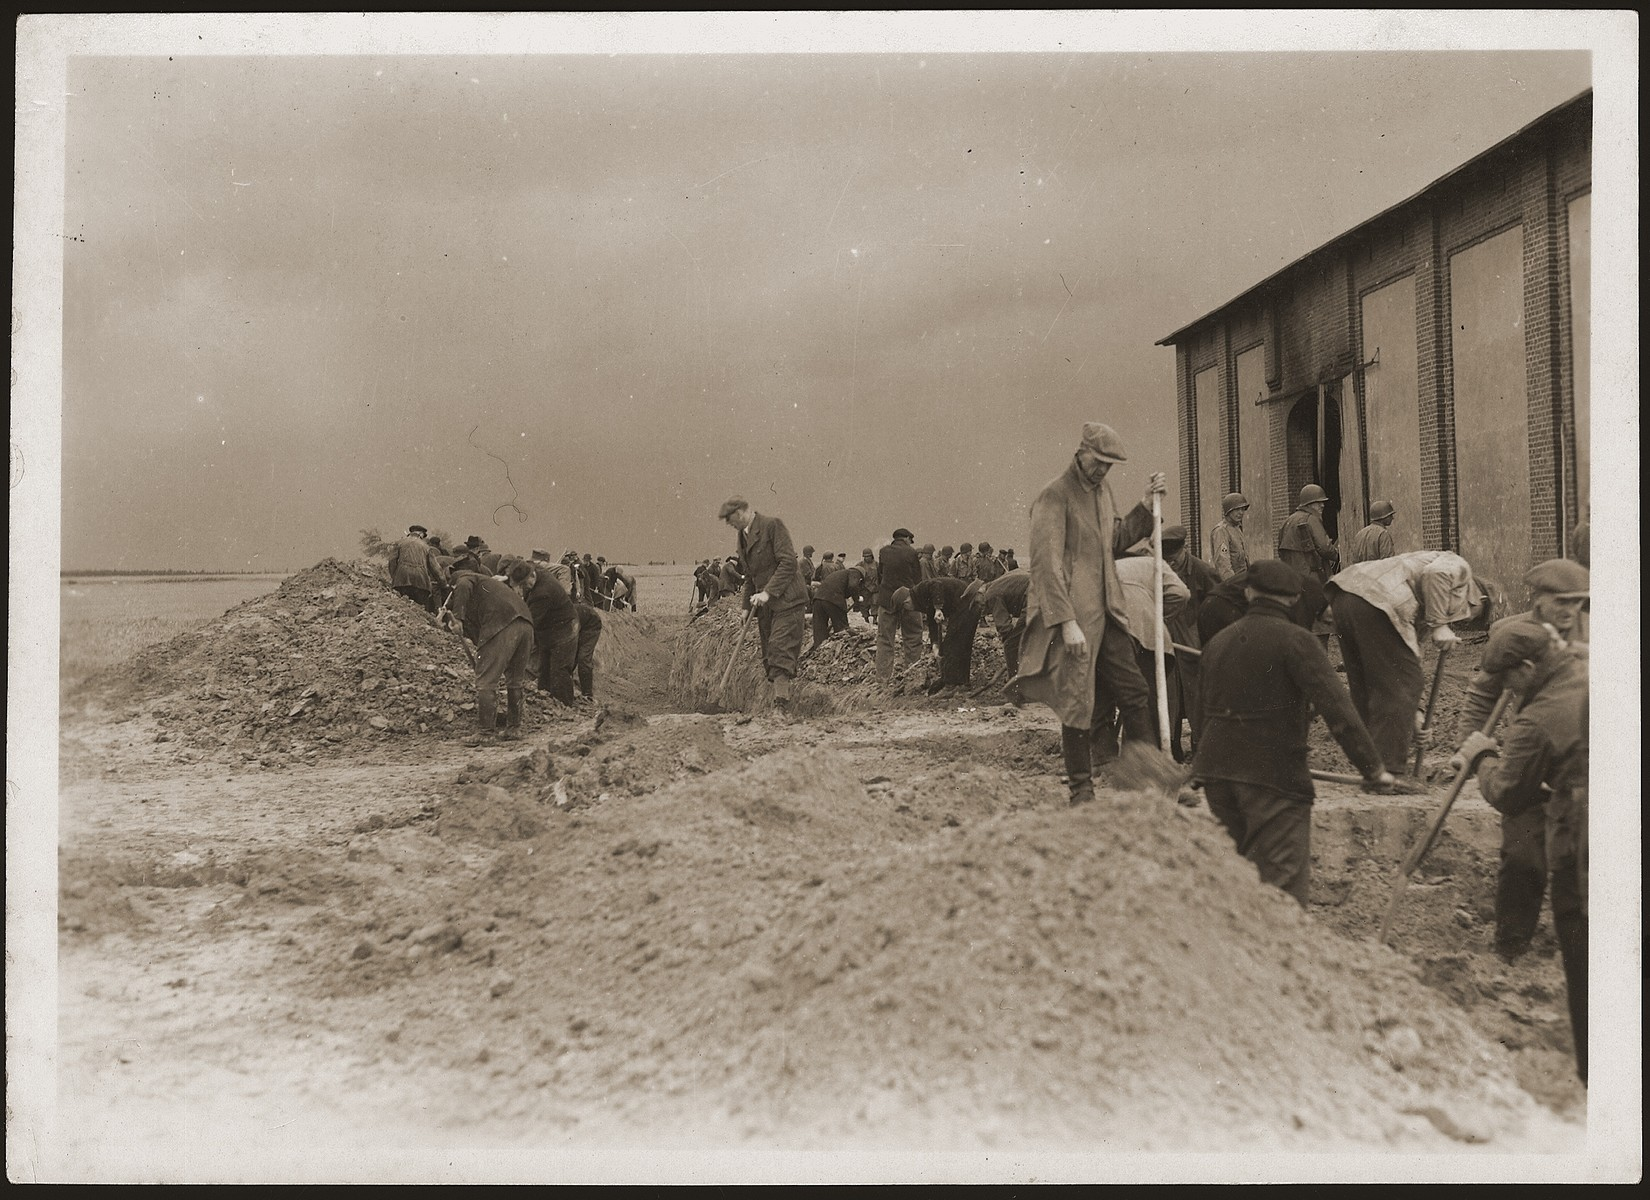 Under the supervision of American soldiers, German civilians exhume a mass grave containing the bodies of concentration camp prisoners killed by the SS in a barn just outside of Gardelegen.